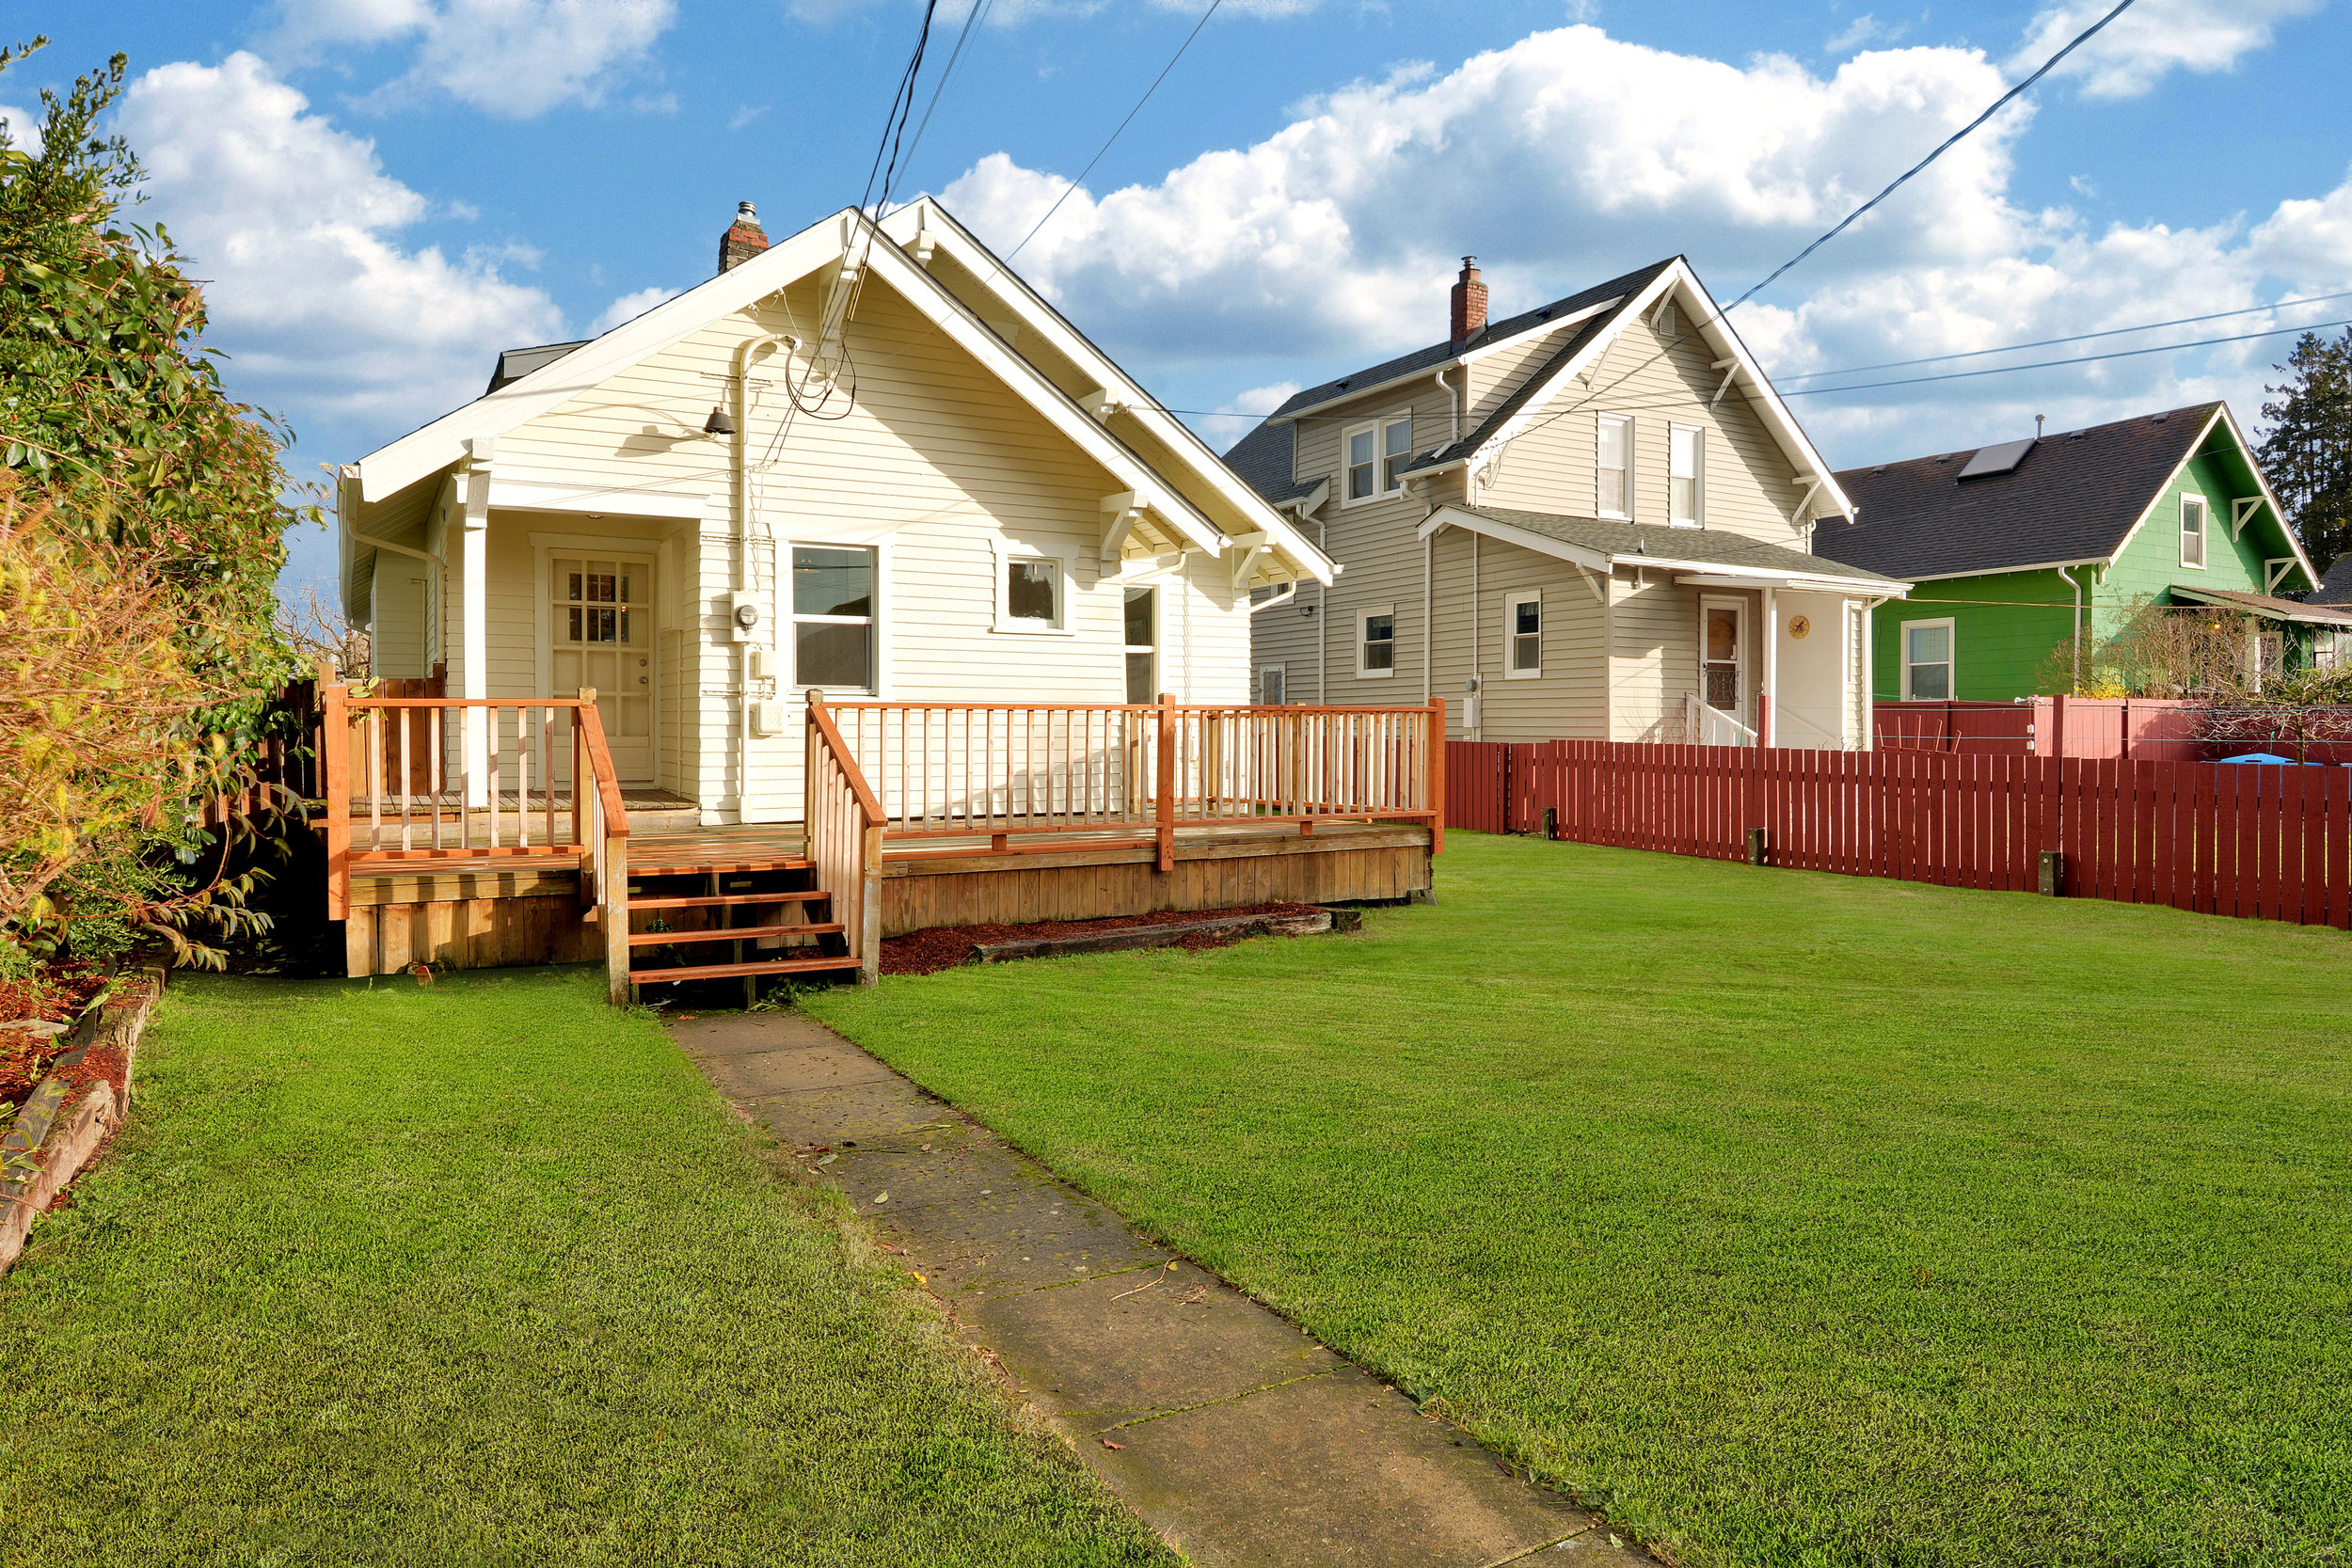 The fully-fenced back yard is big with a wooden deck right off the kitchen!